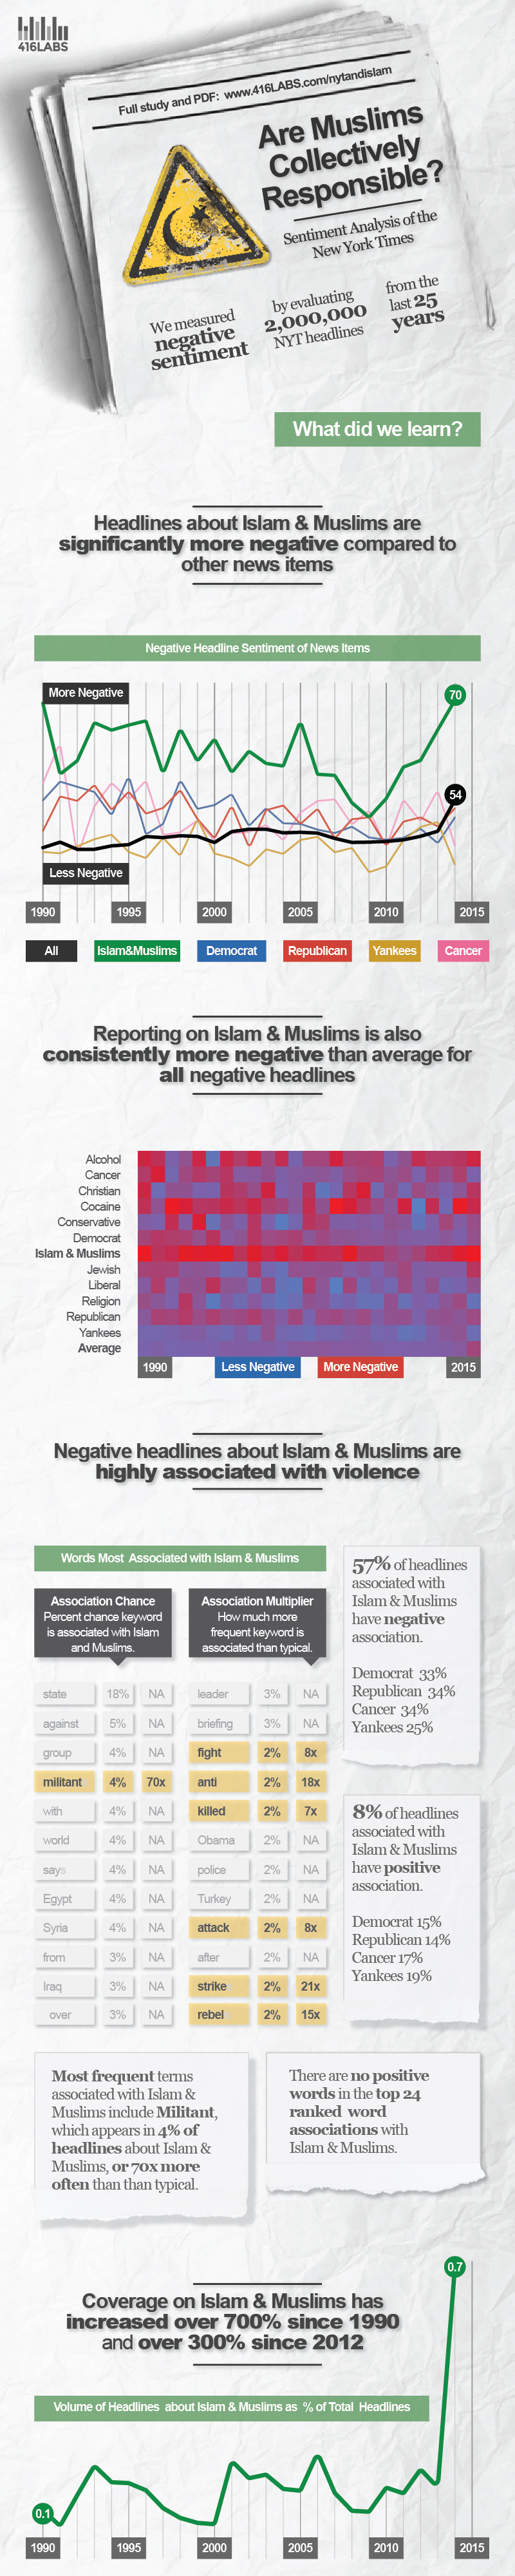 nytandislam_infographic.png